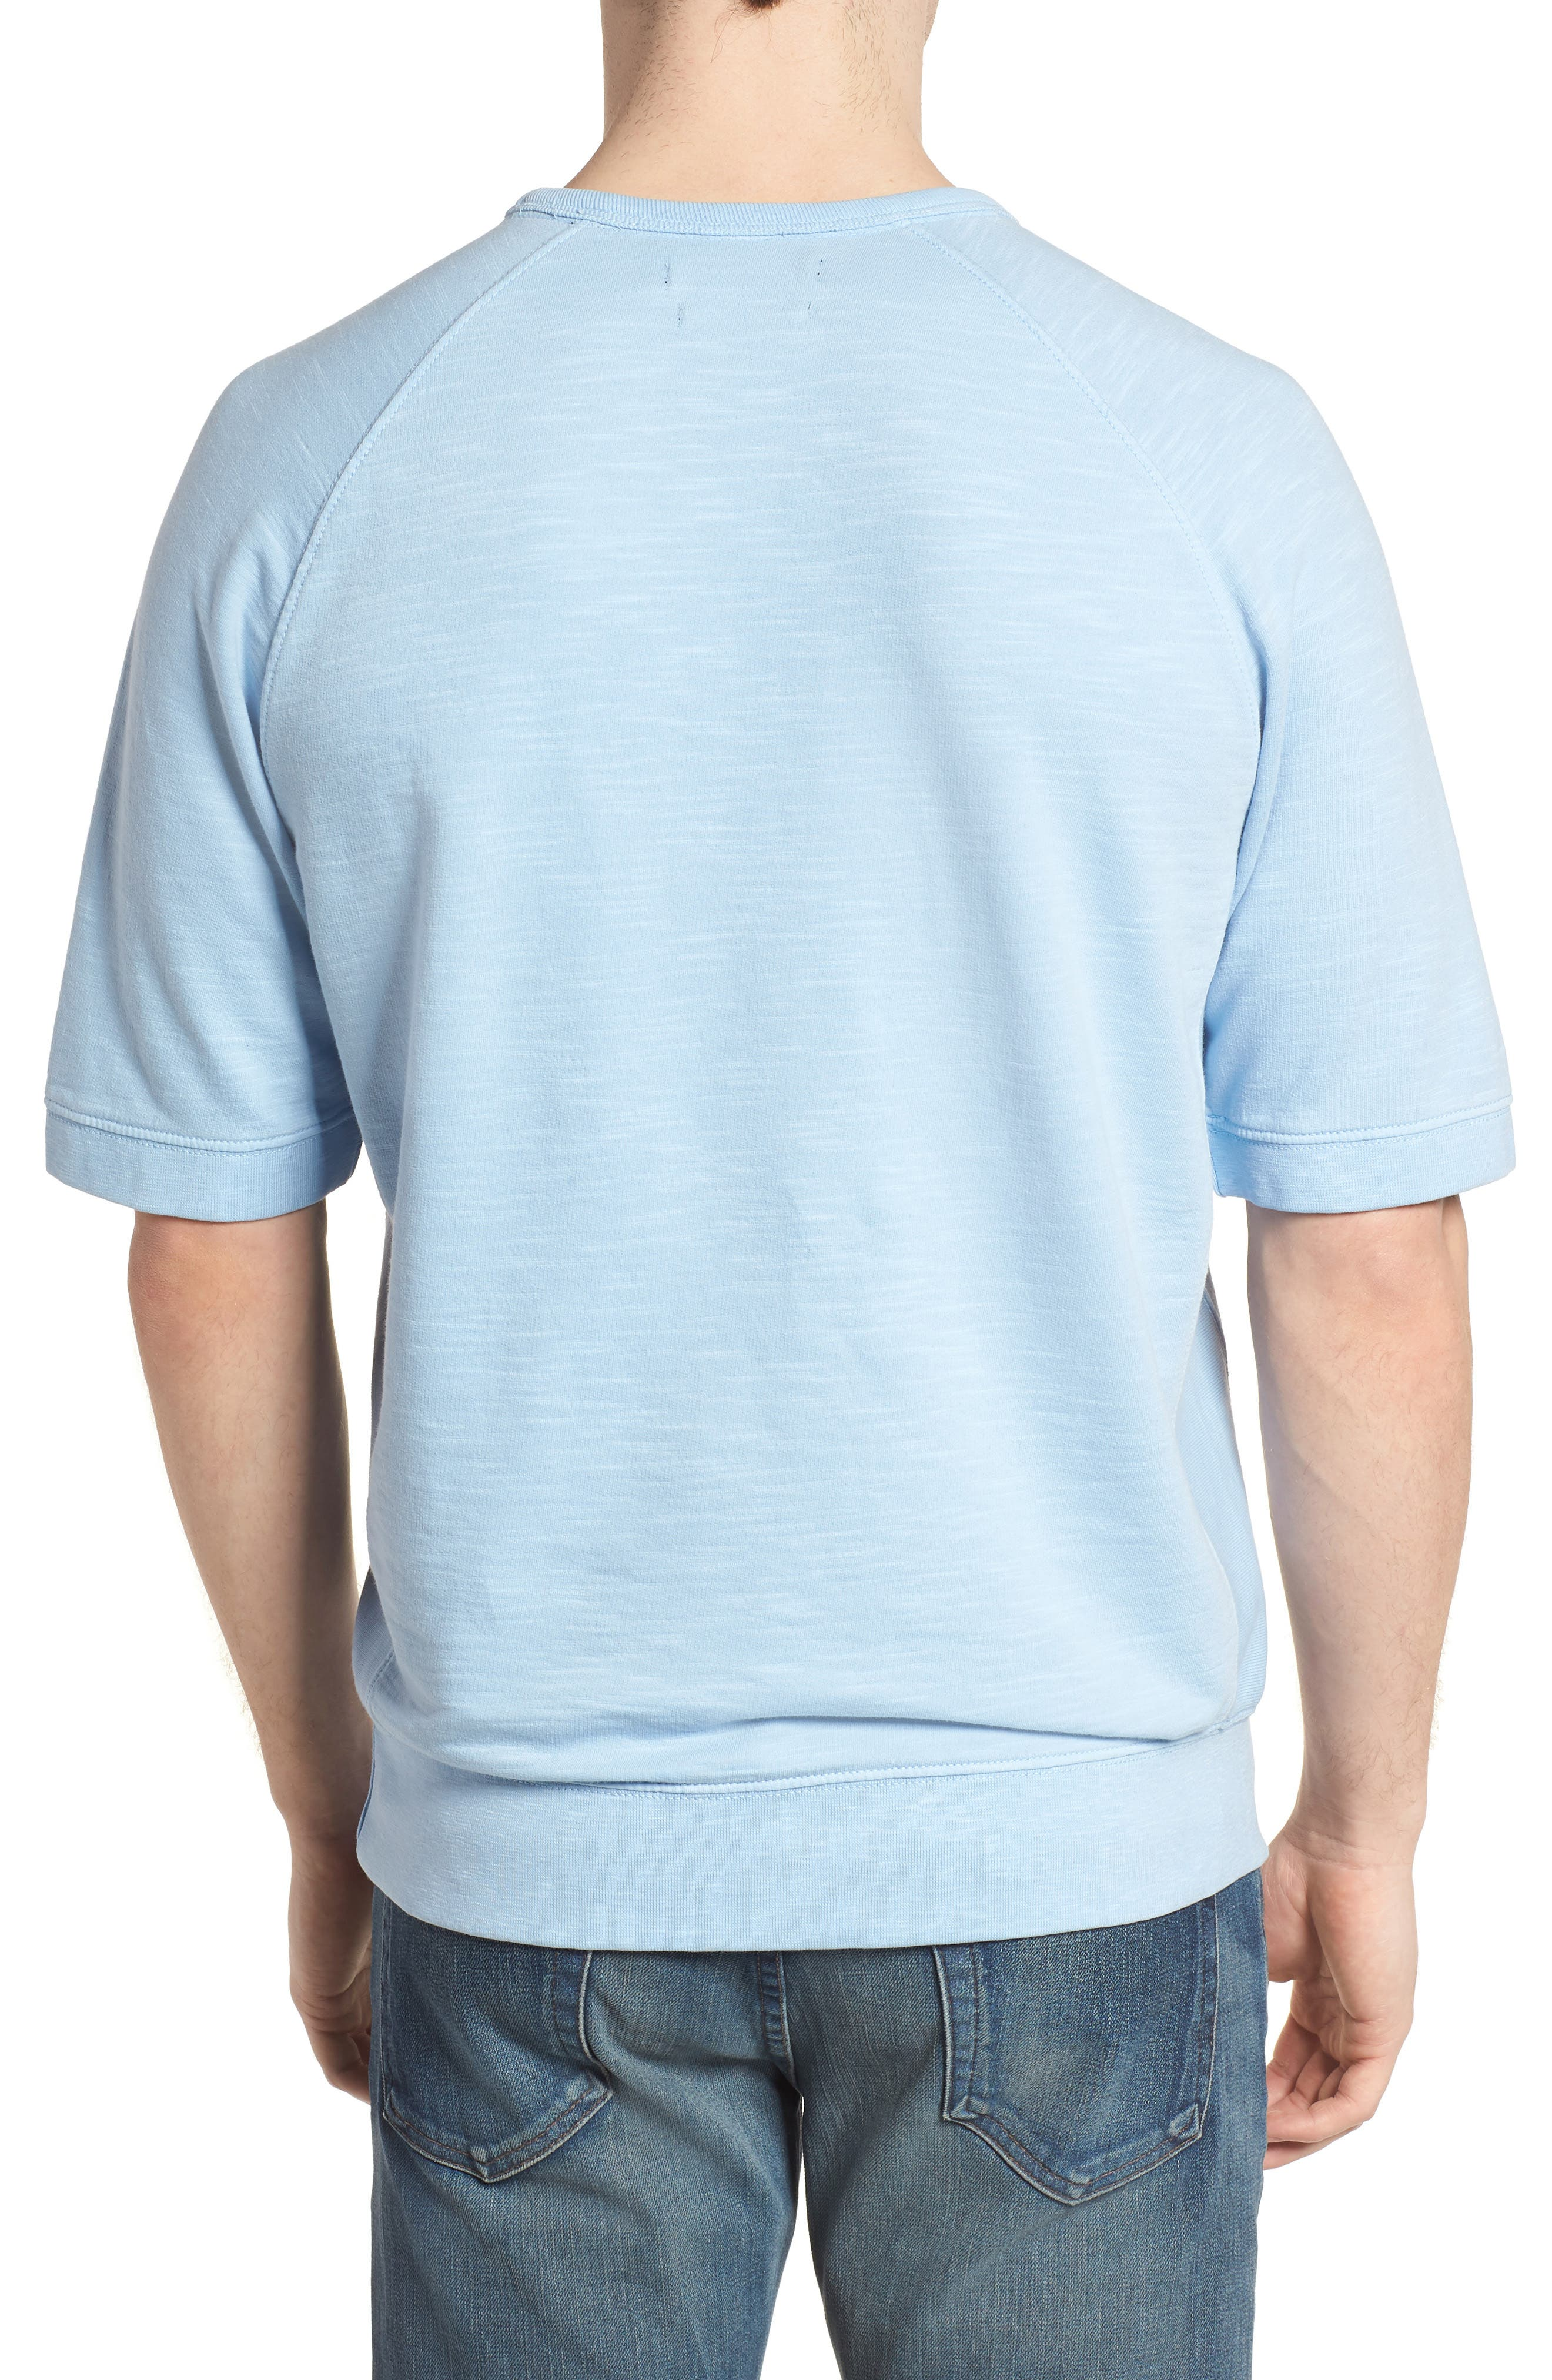 Workout Relaxed Fit Crewneck T-Shirt,                             Alternate thumbnail 2, color,                             400